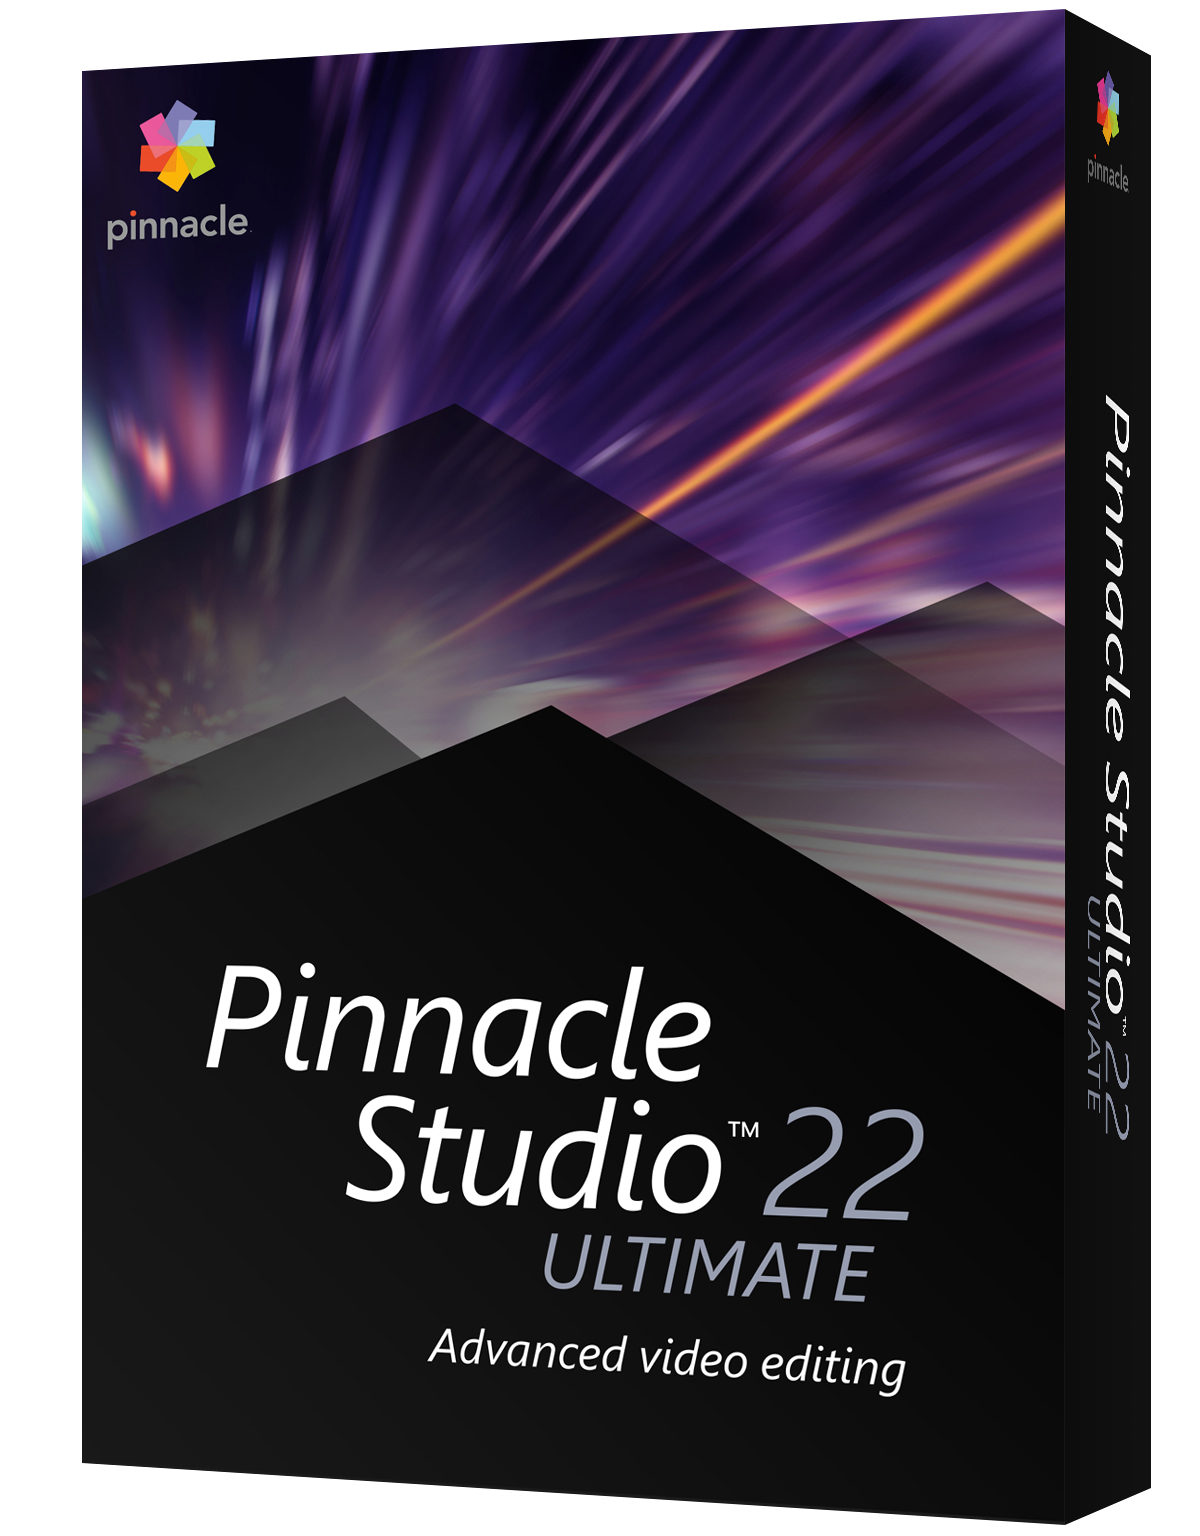 Pinnacle Studio 22 Ultimate Classroom License 15+1